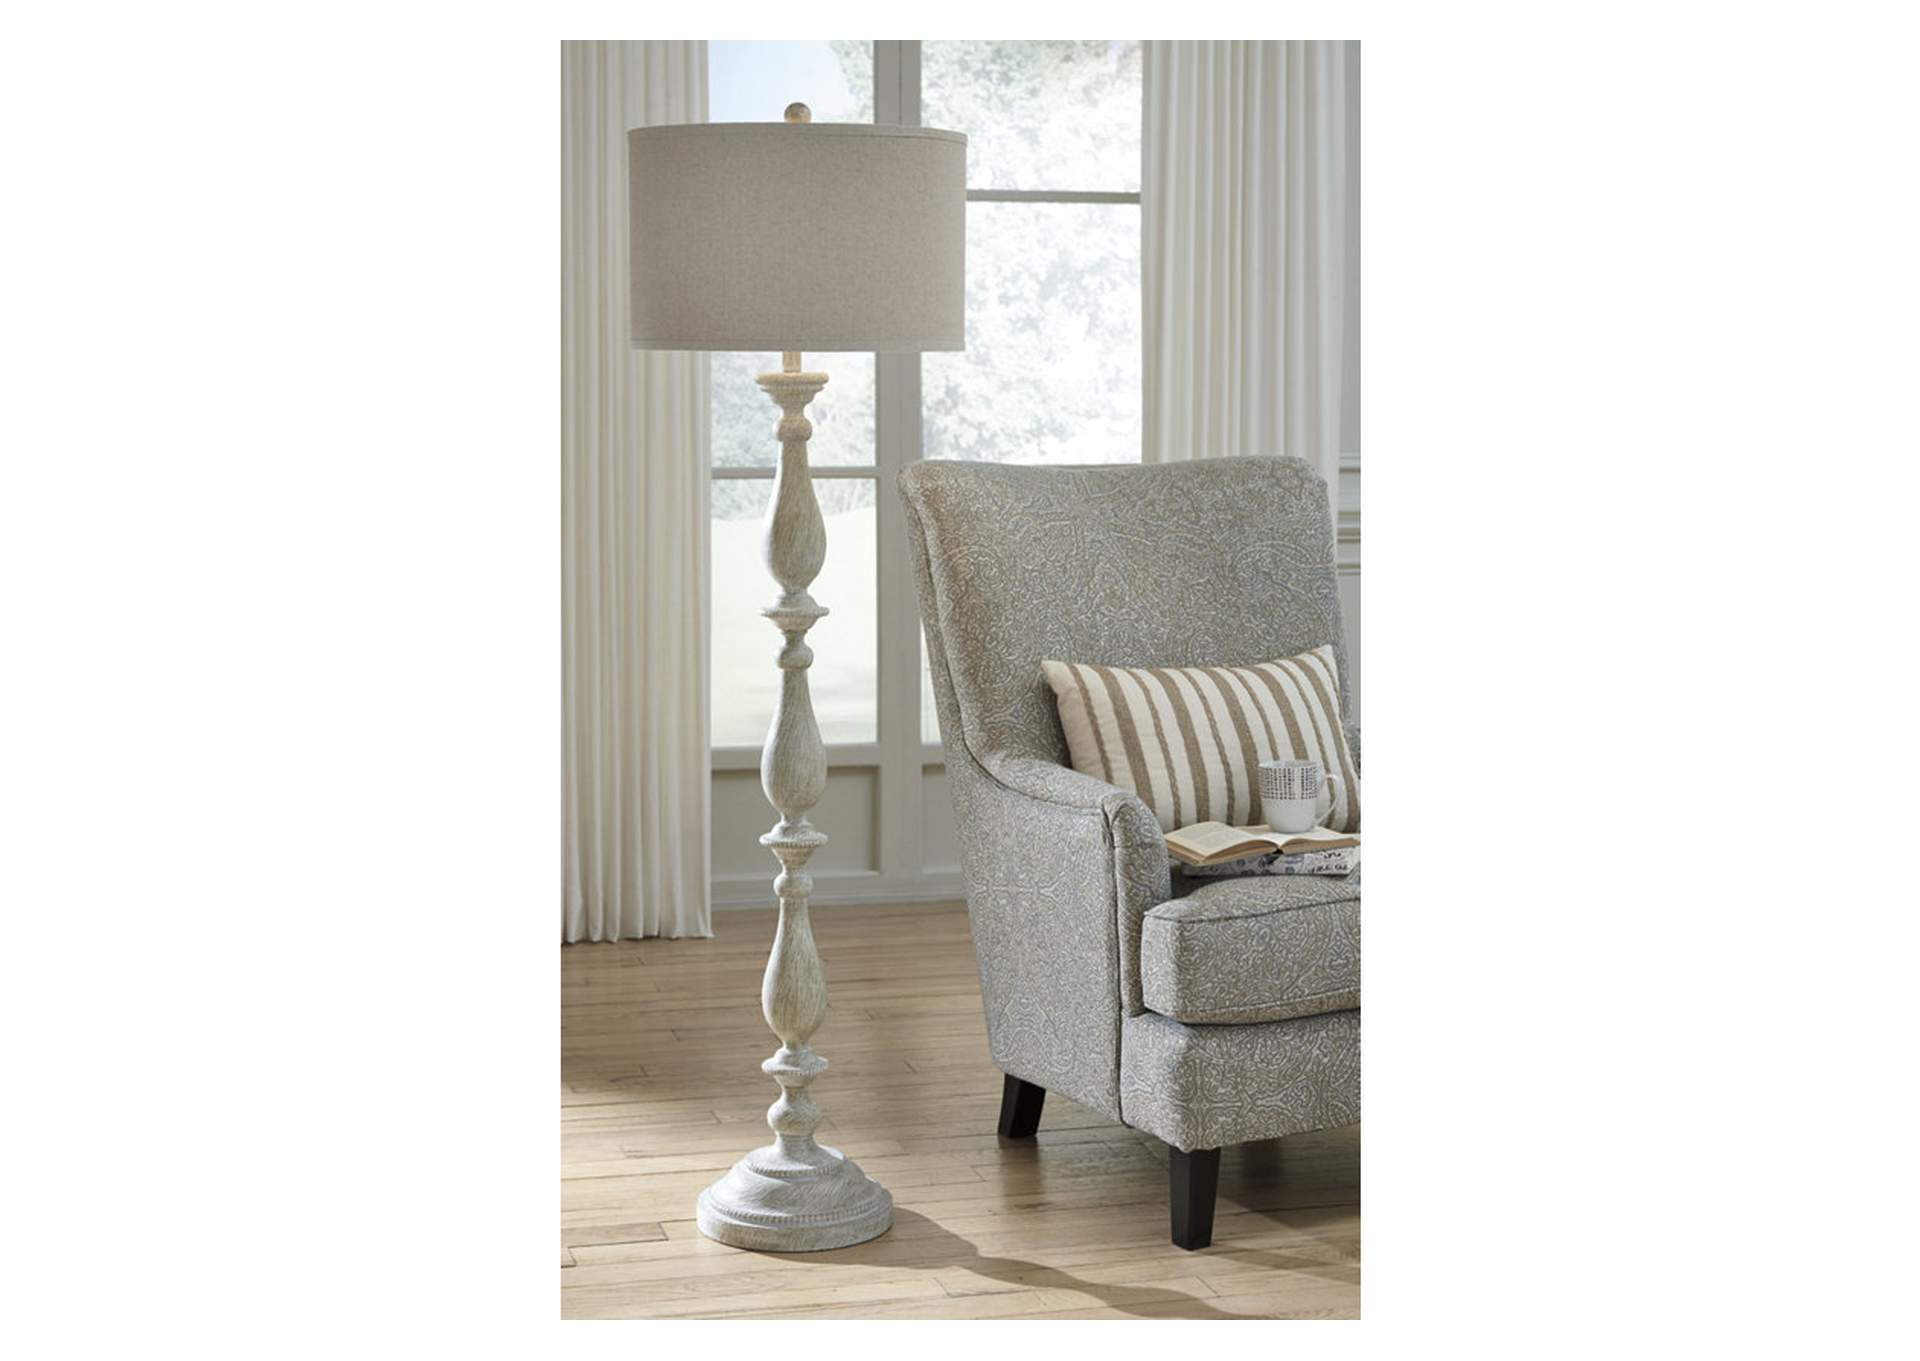 Bernadate Whitewash Poly Floor Lamp,Direct To Consumer Express